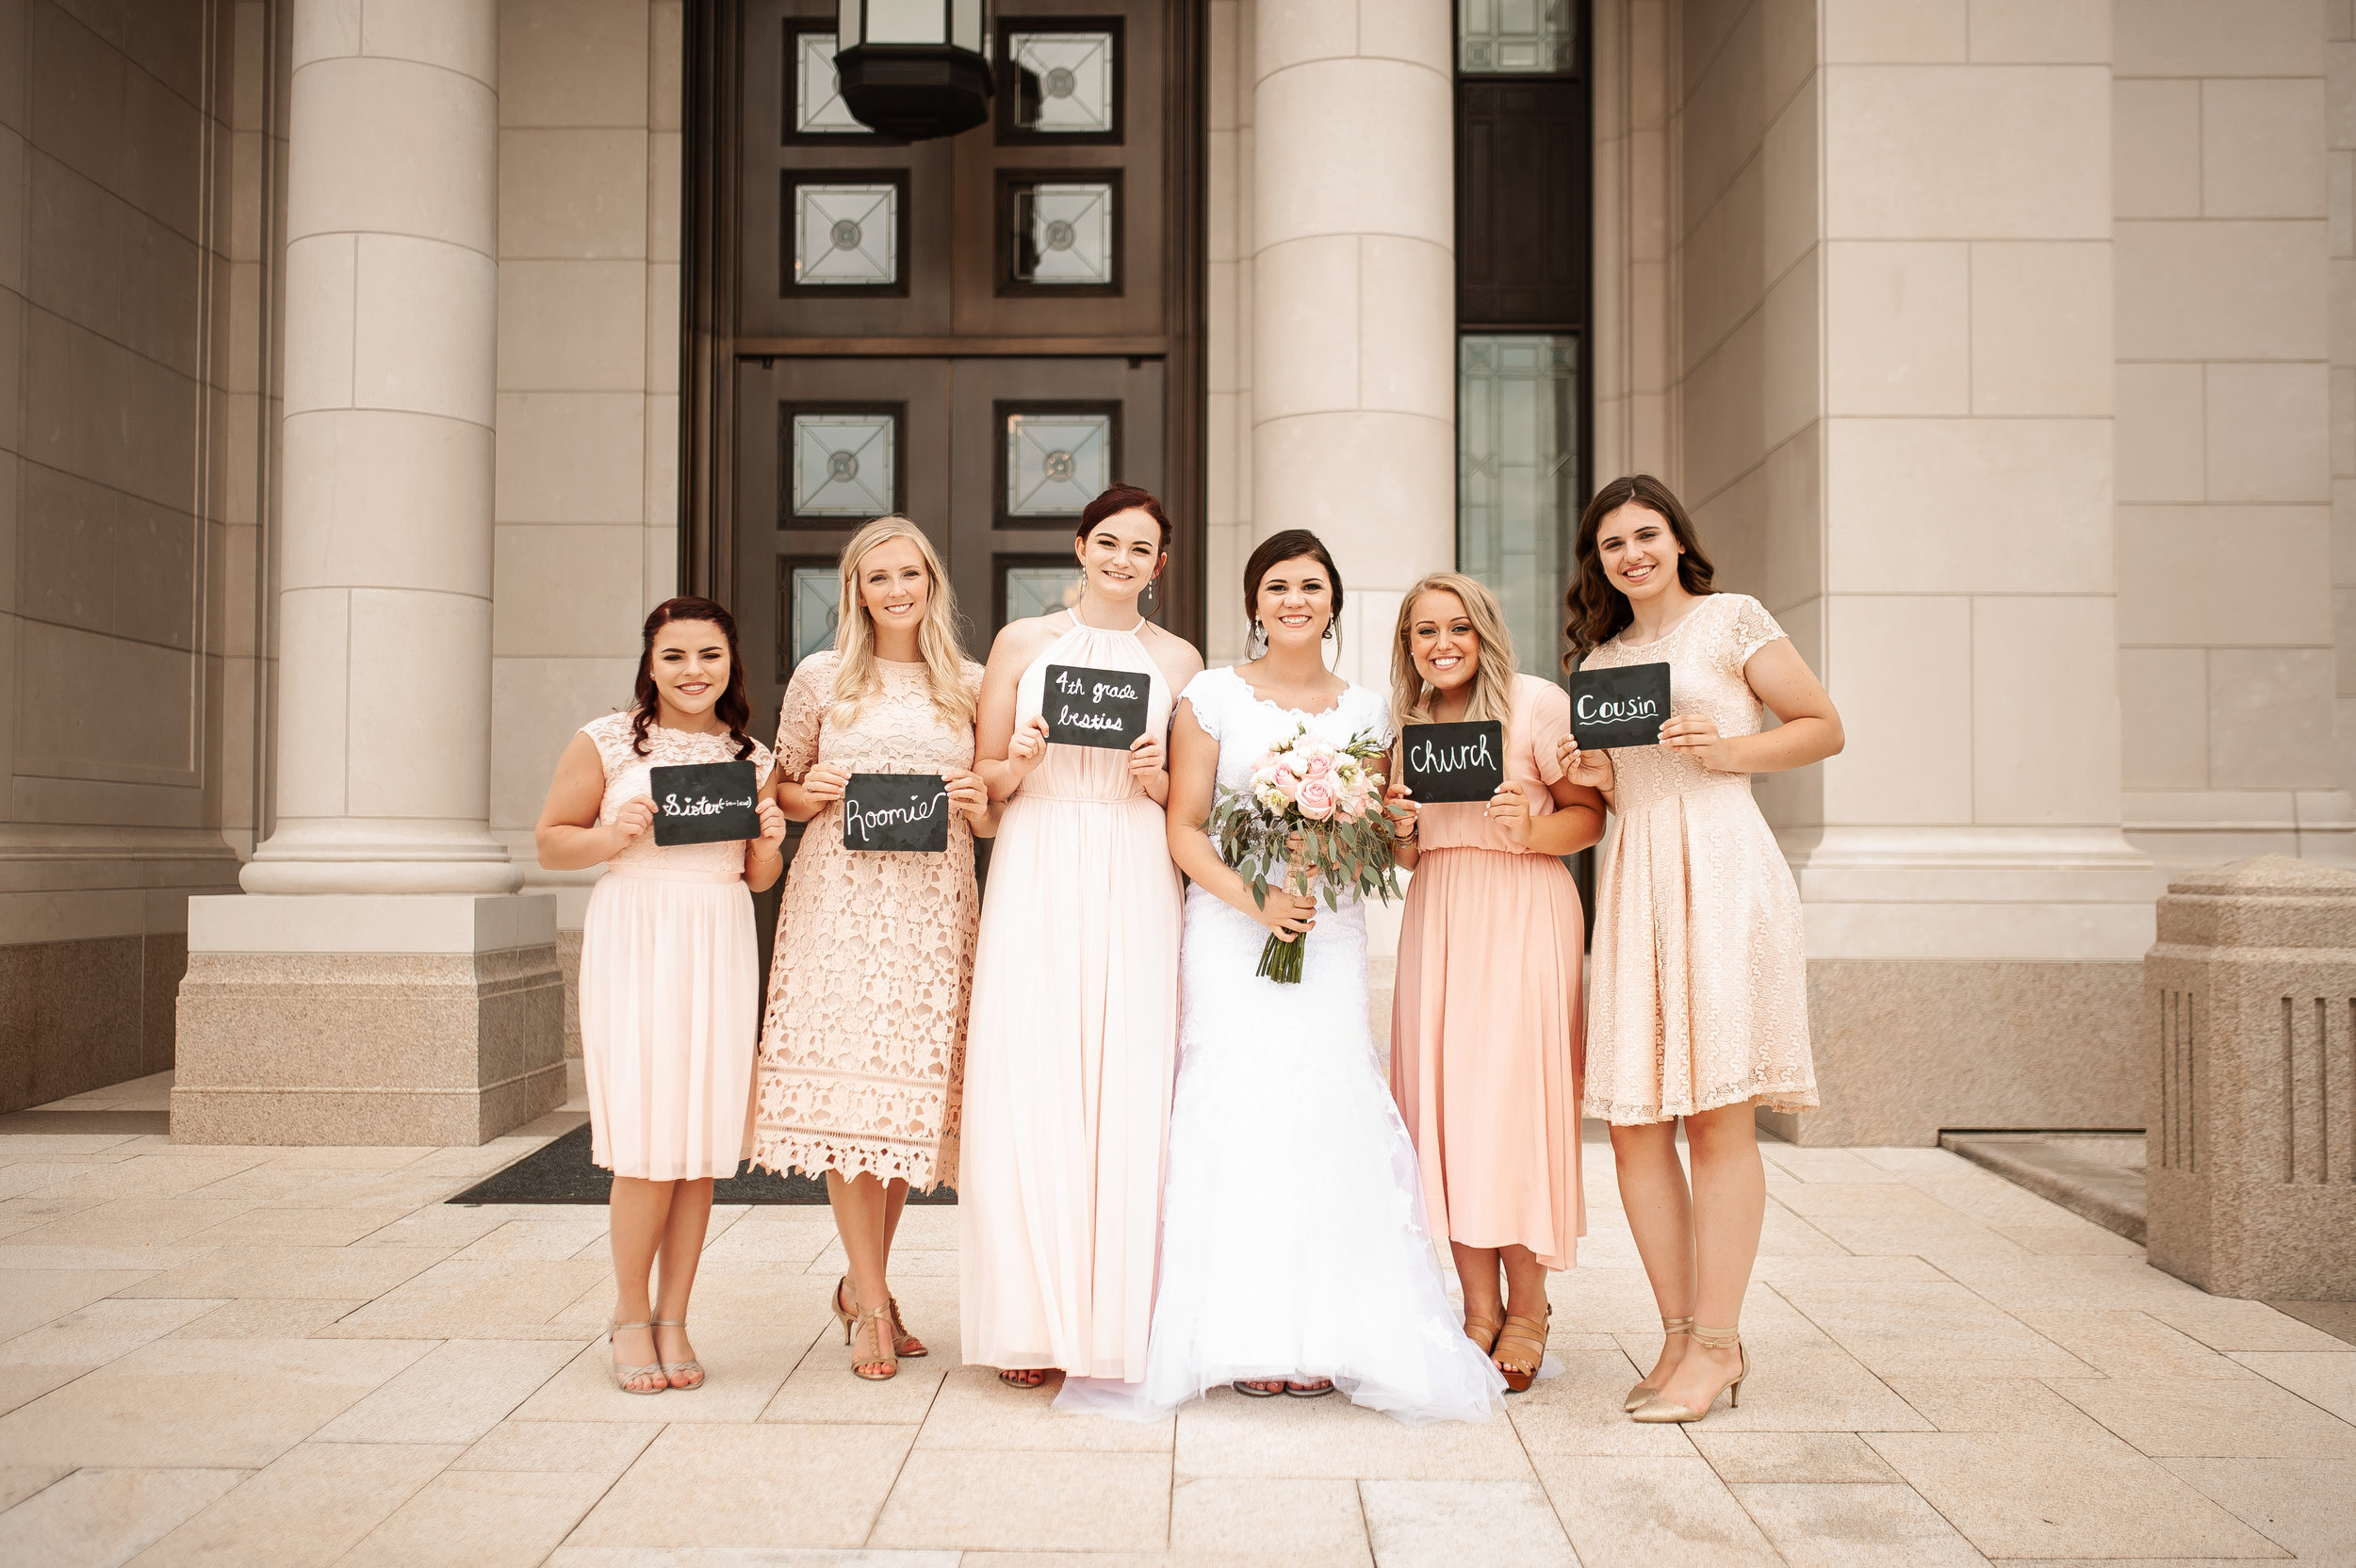 Bridal party with cute signs showing how they met the bride, Allie.